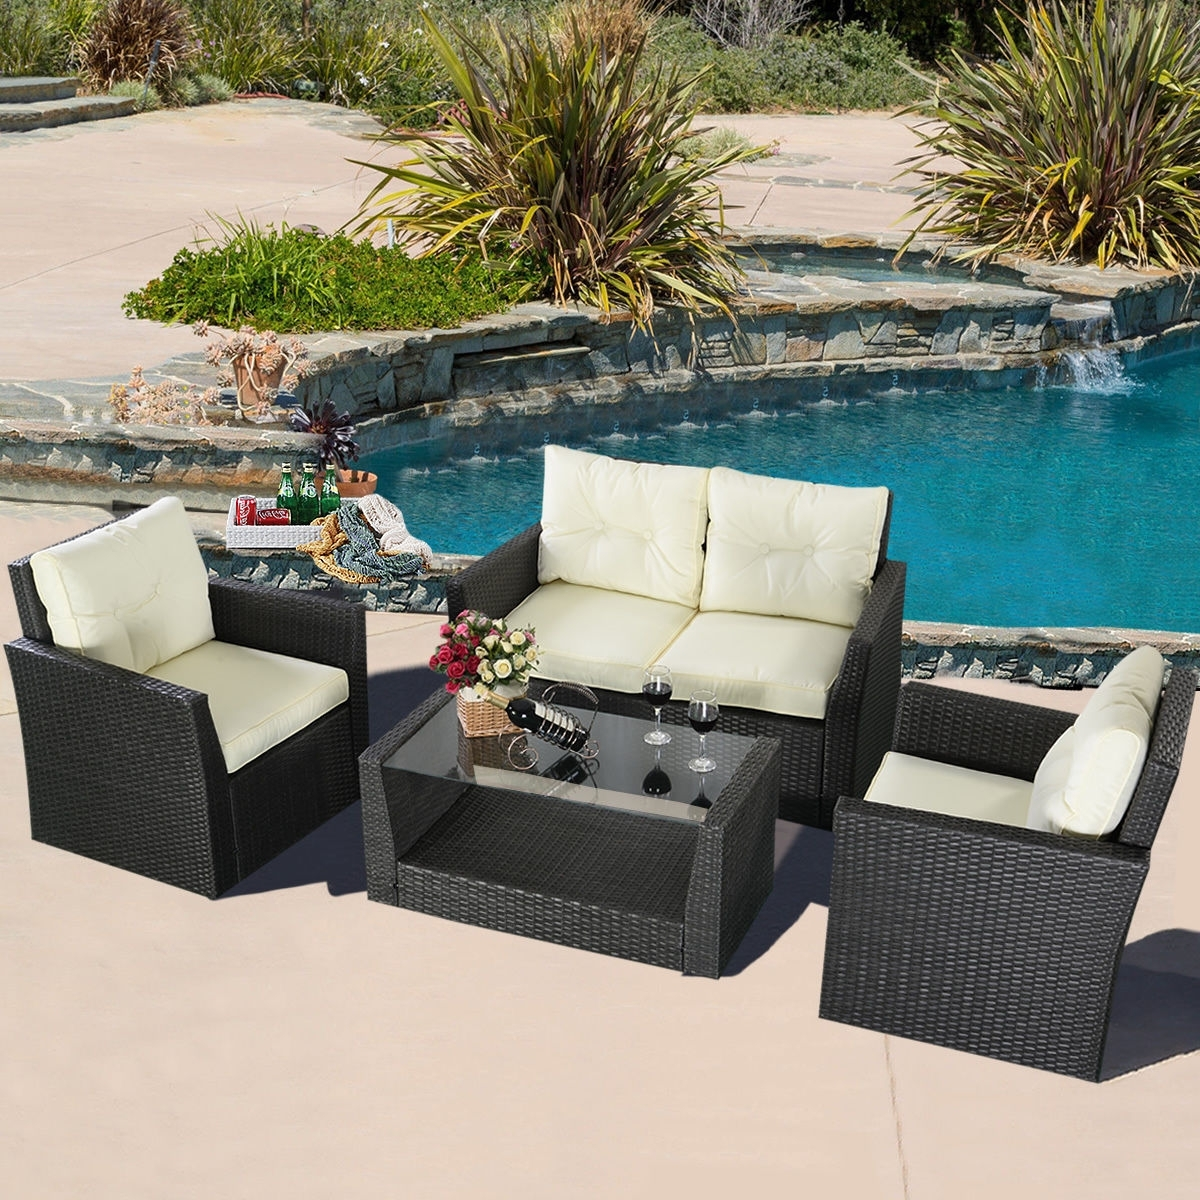 Pier One Patio Conversation Sets Regarding Famous Gray Wicker Patio Furniture Simple Outdoor Pier One Wicker Porch (View 11 of 15)